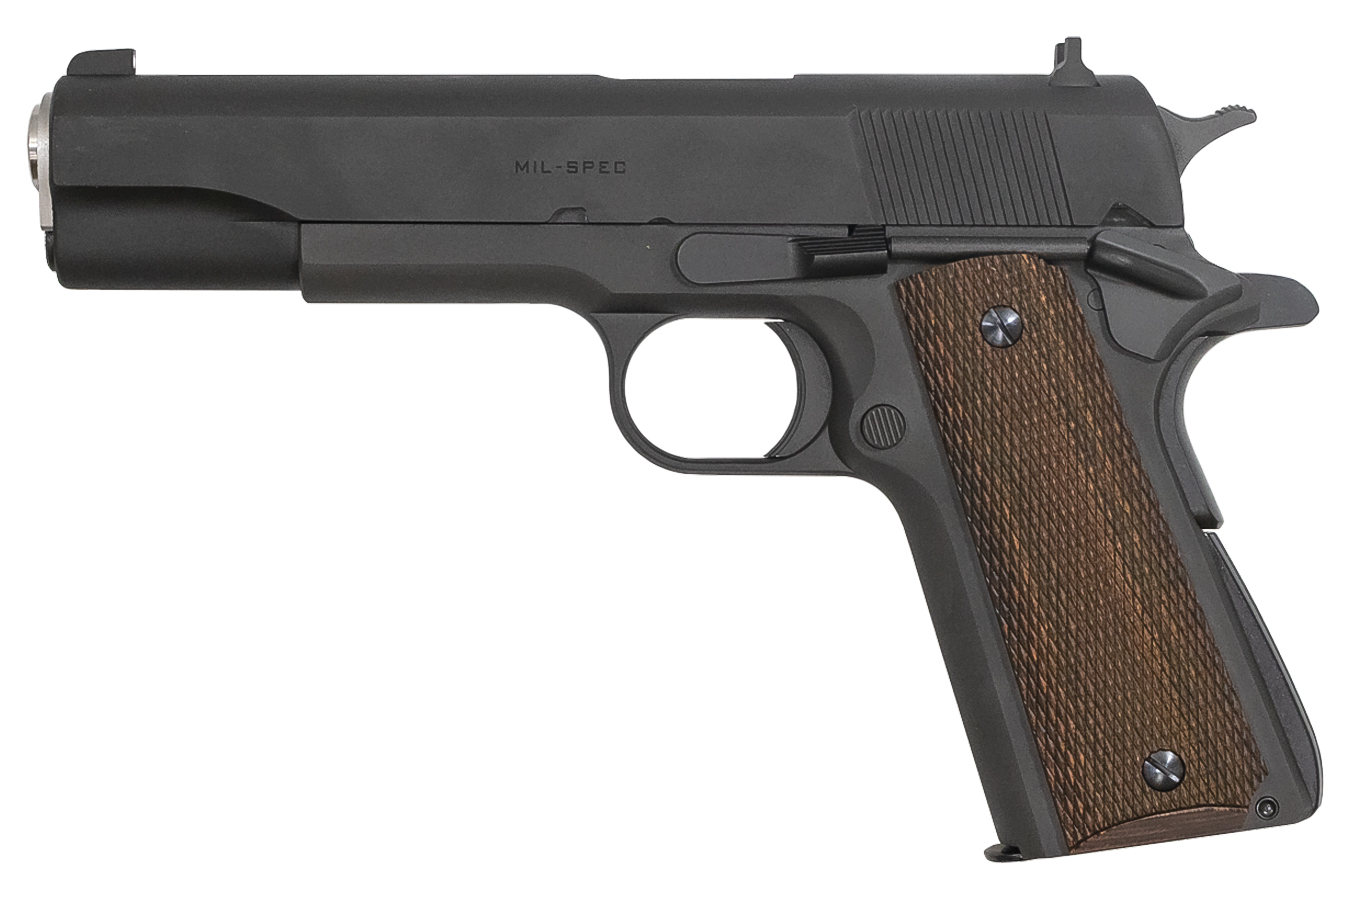 1911 Mil-Spec 45 ACP Defender Series Pistol